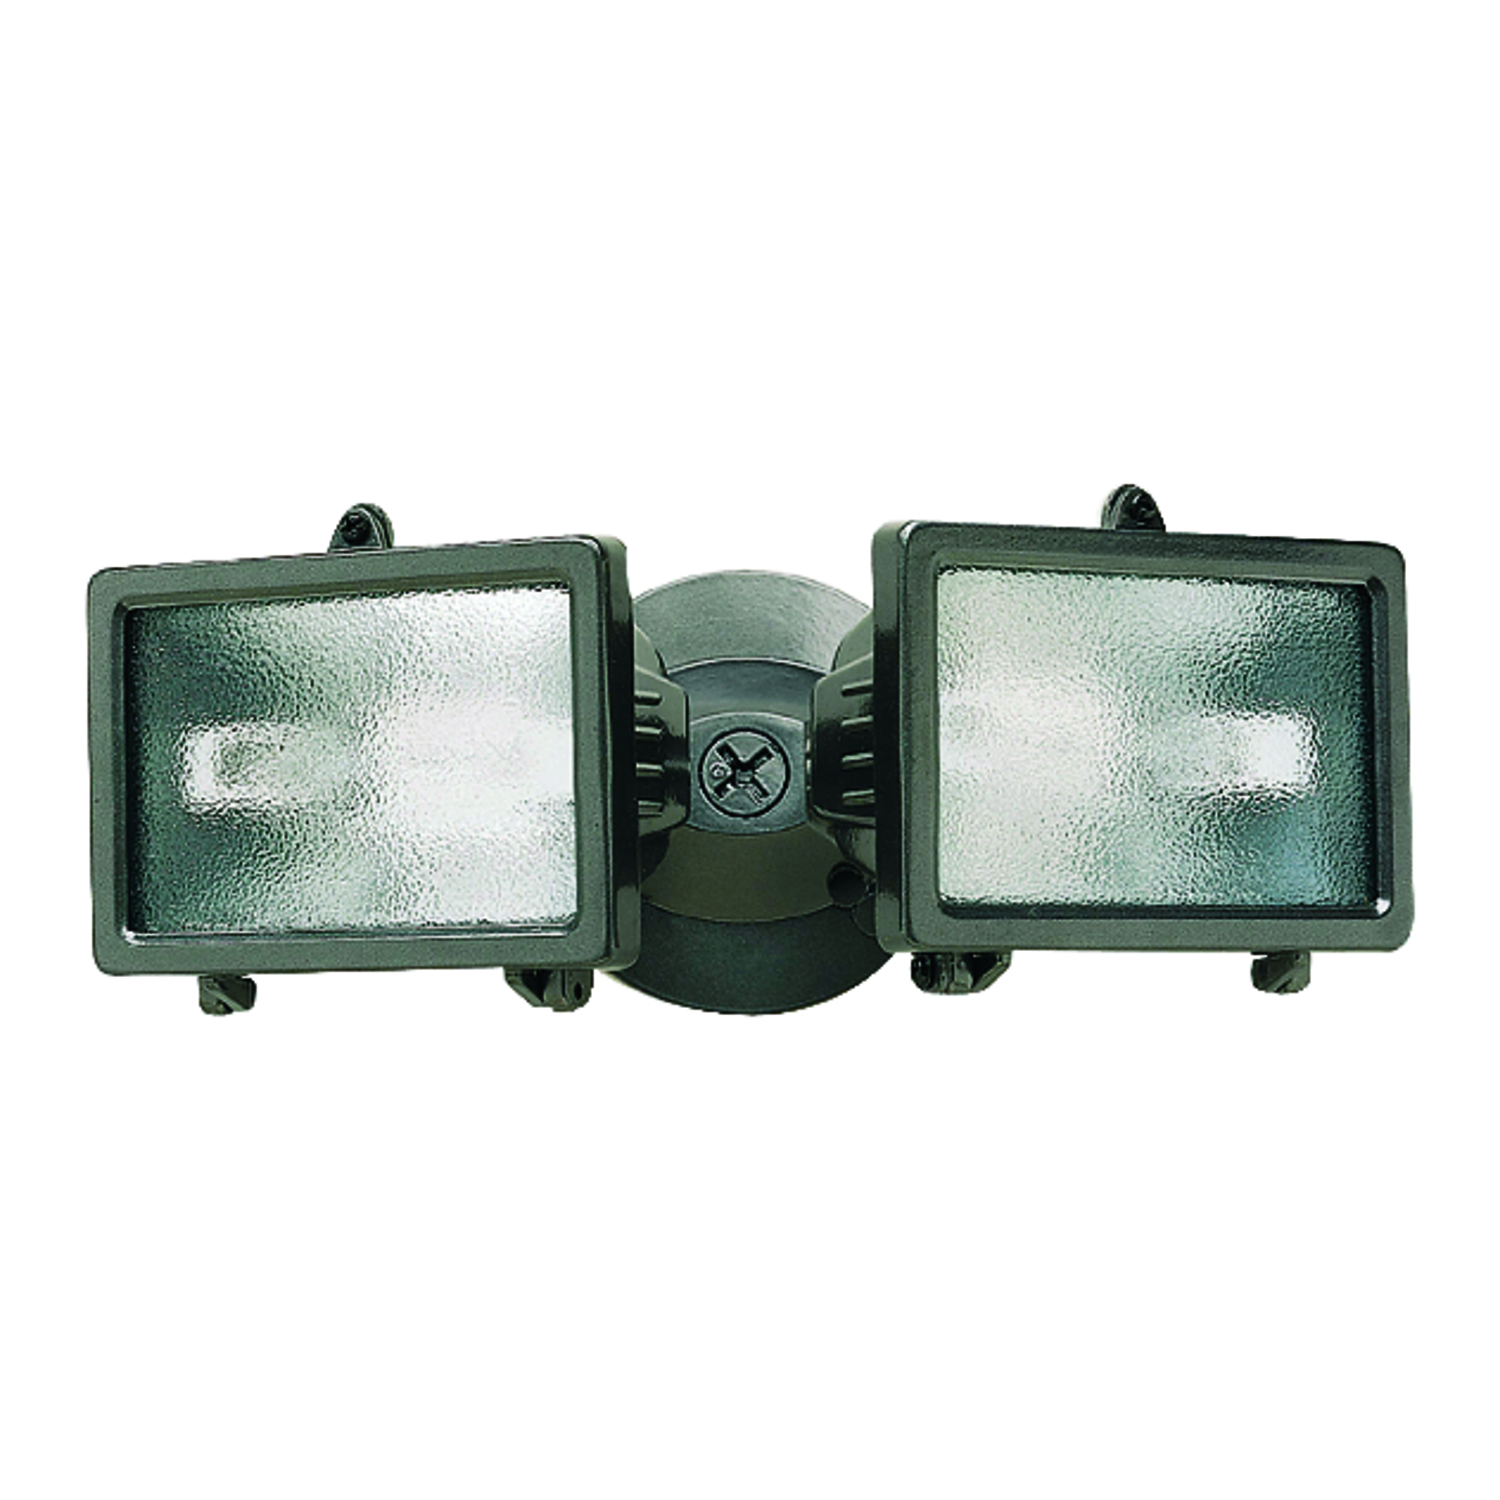 Heath Zenith  Switch  Halogen  1  Dual Floodlight  Hardwired